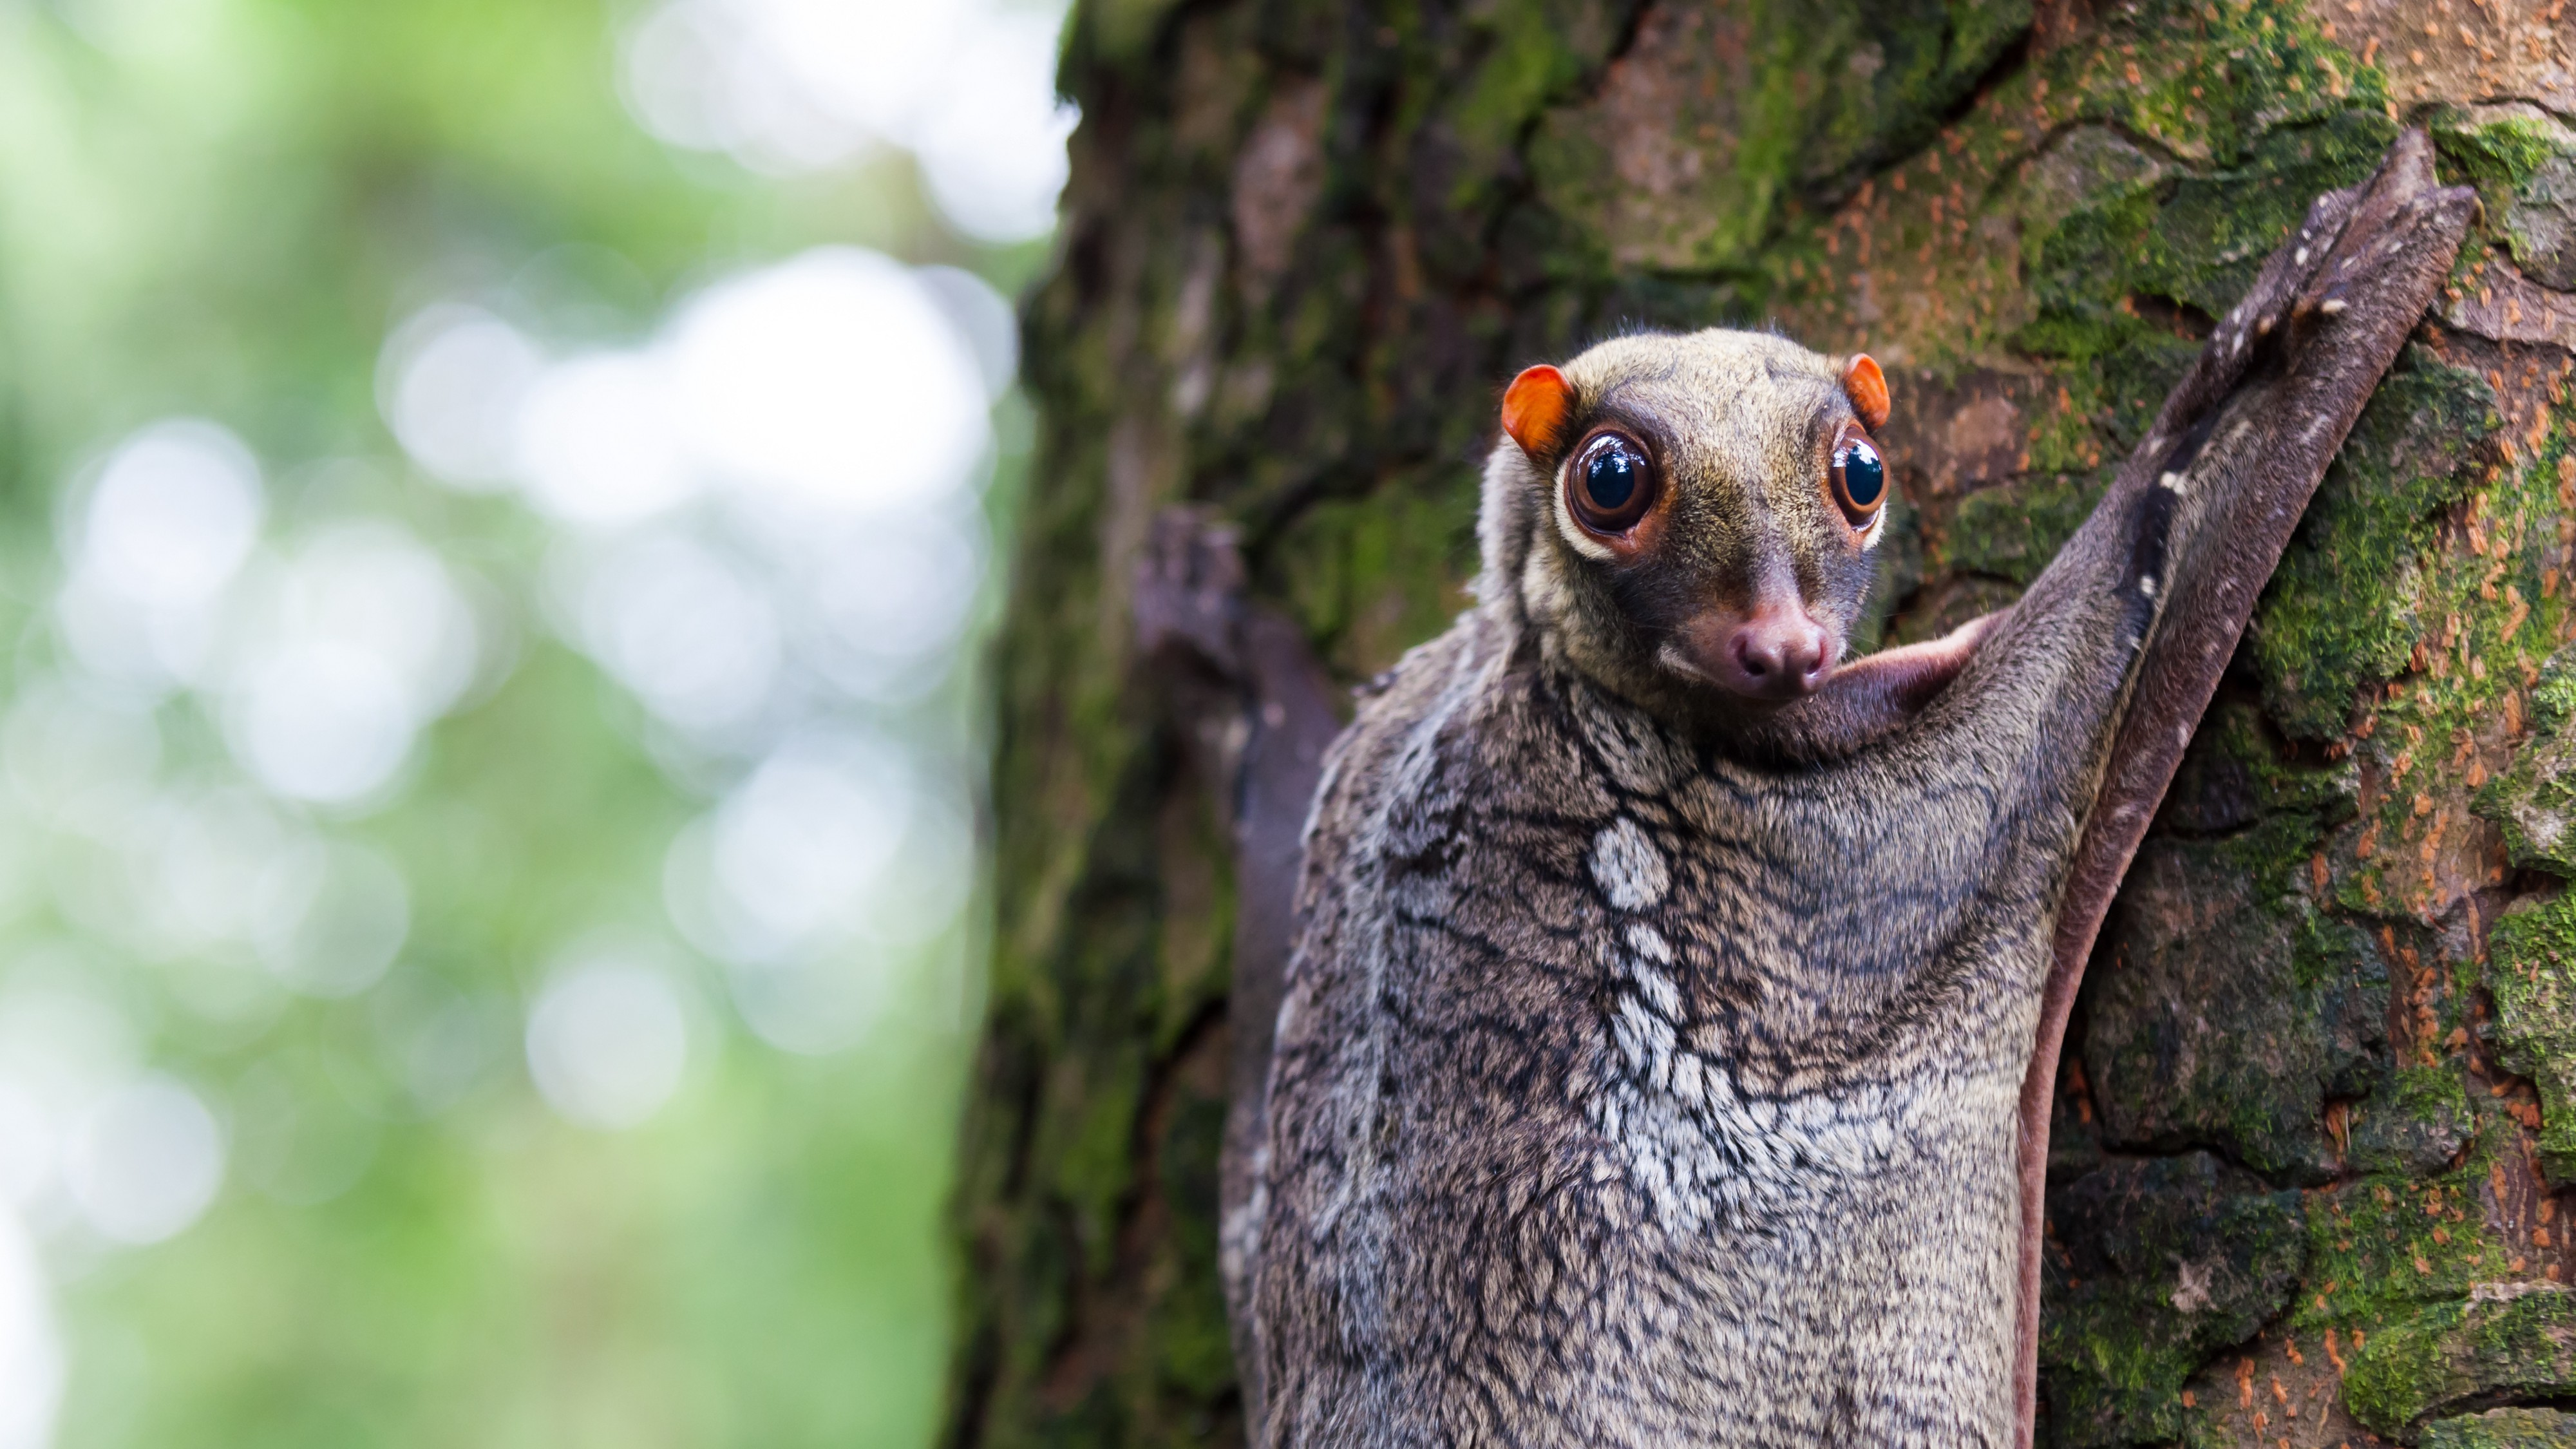 a creature that looks like a flying squirrel or bat, with very large round eyes